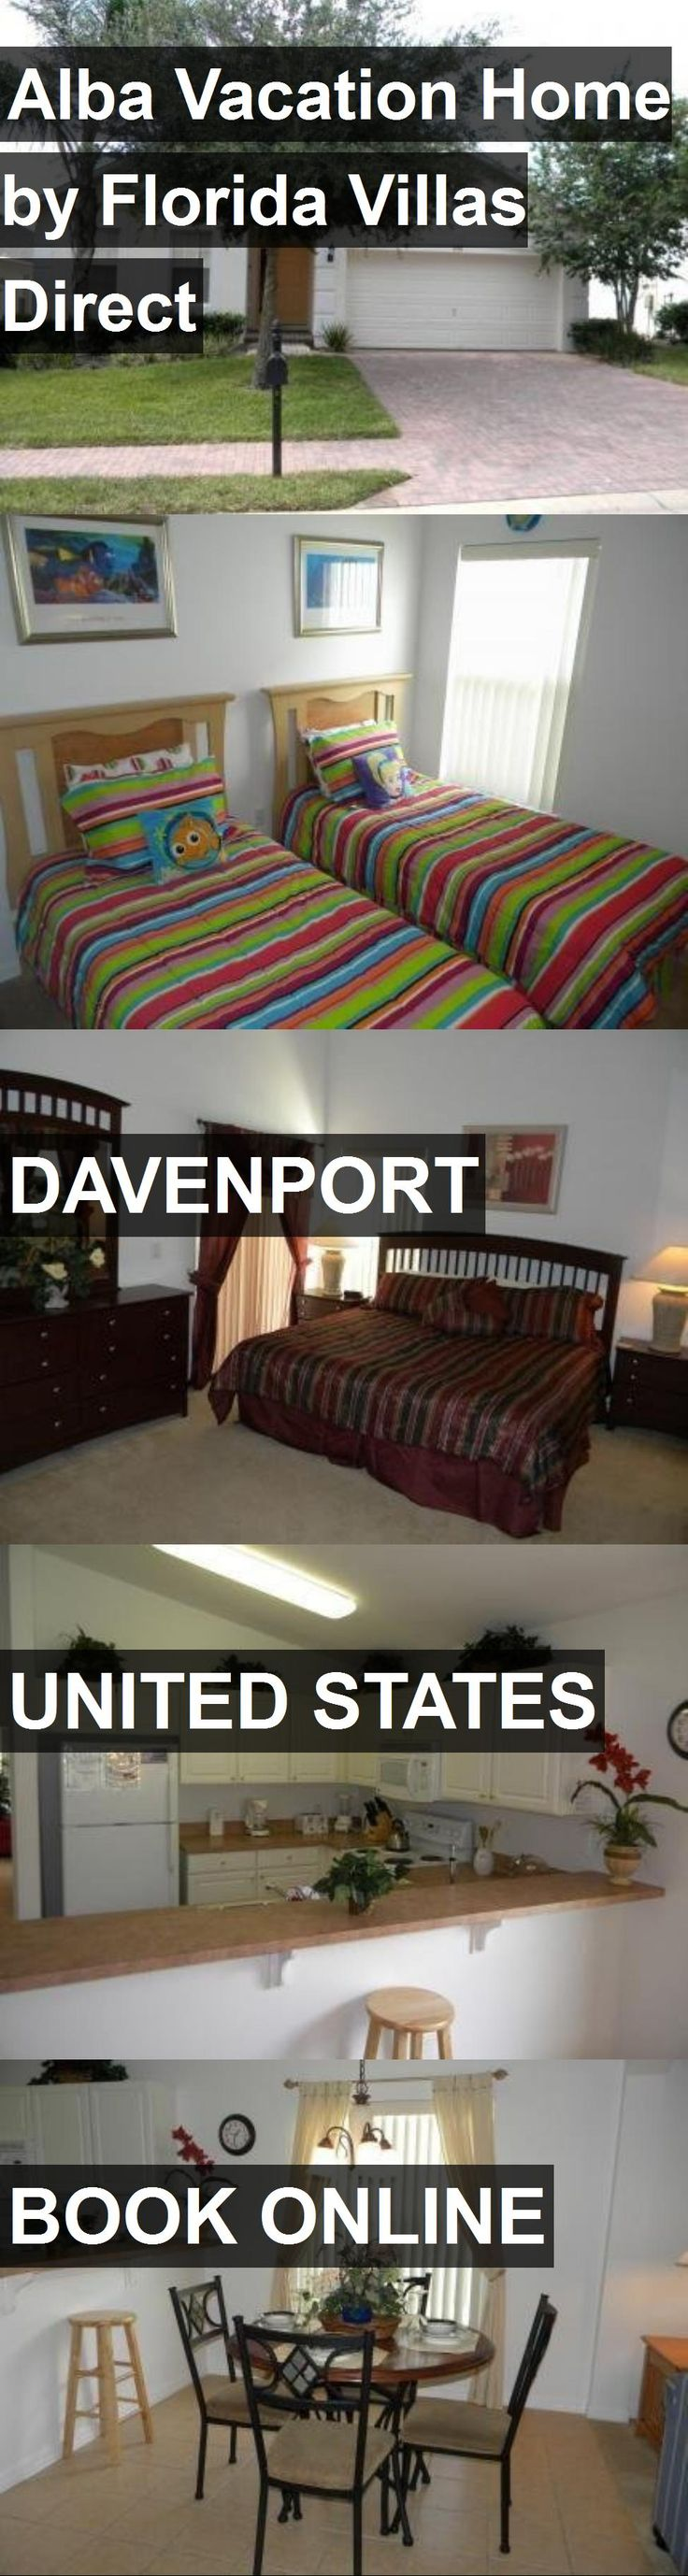 2 bedroom suites in florida%0A Hotel Alba Vacation Home by Florida Villas Direct in Davenport  United  States  For more